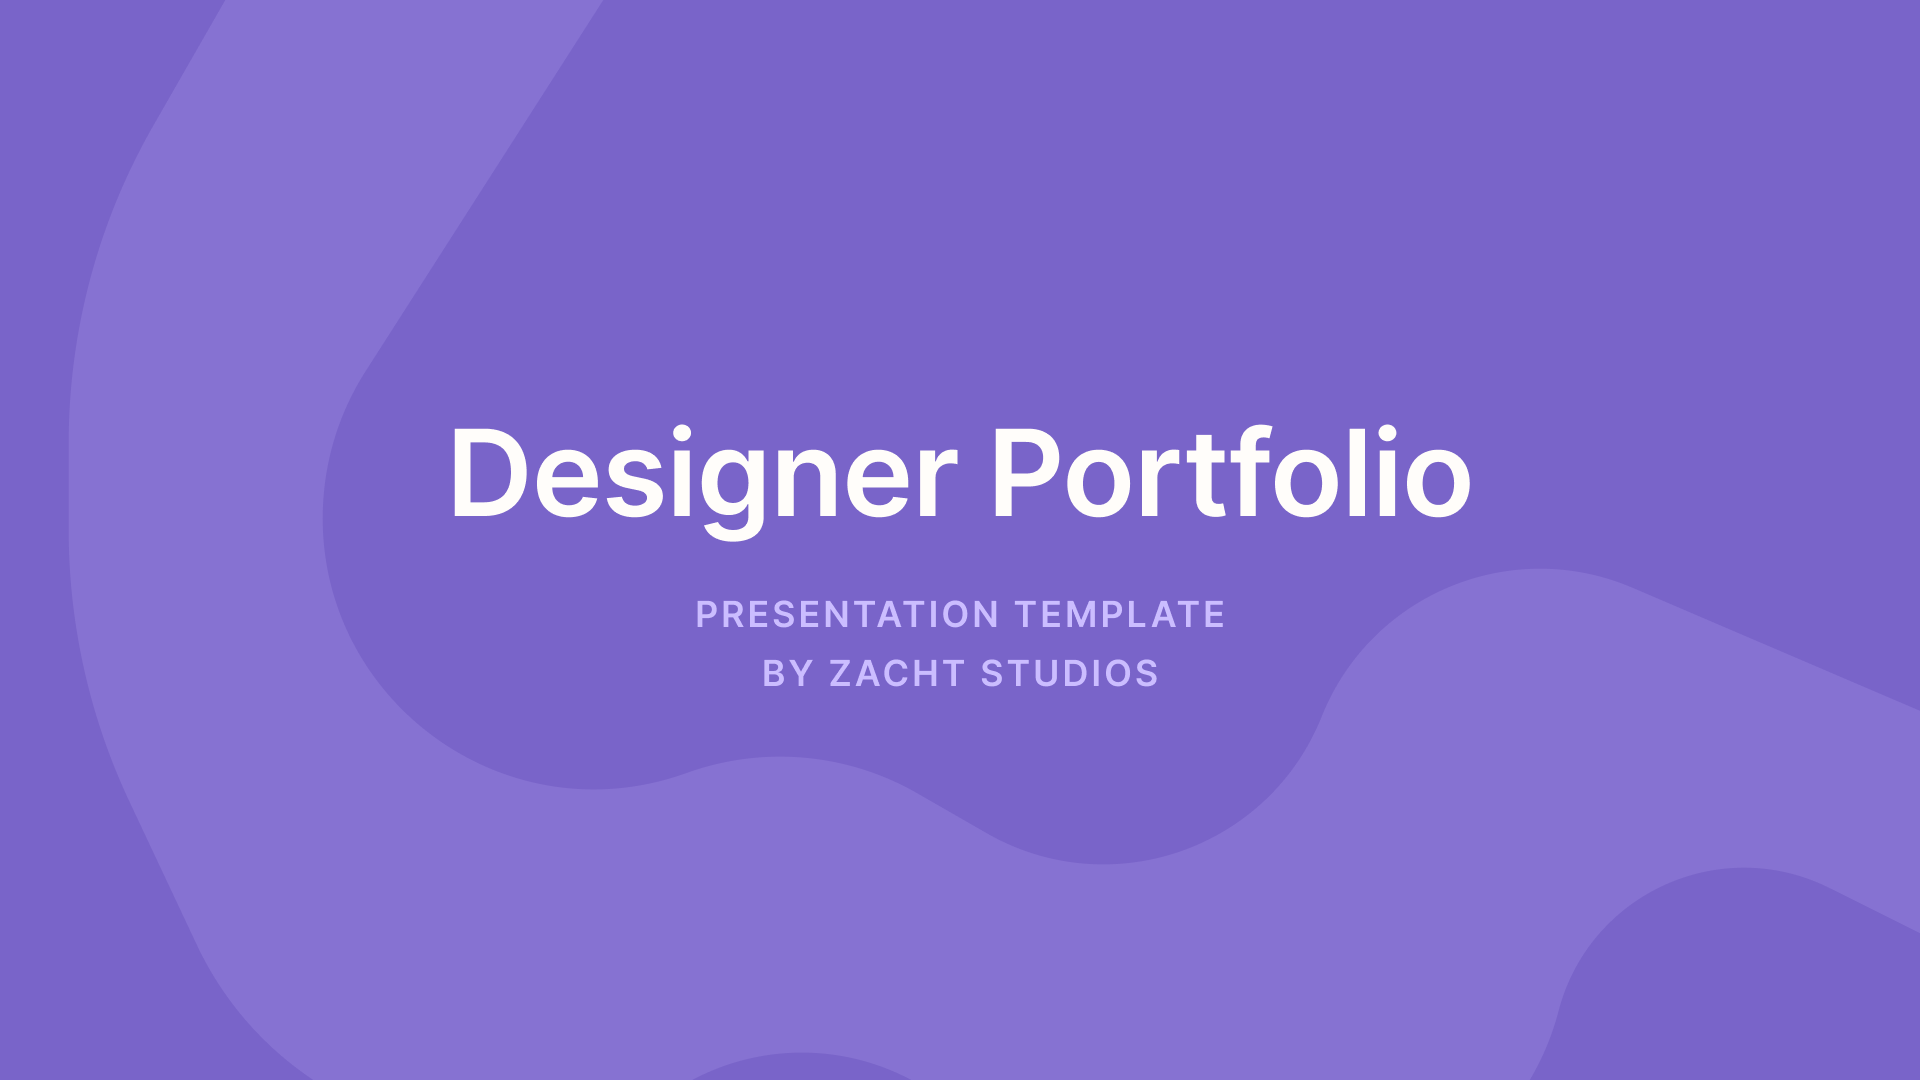 Are you a designer, about to interview for your dream job at that perfect company for you? Nail your next Portfolio Presentation with this template built for designers. Put your best foot forward, show off those case studies, and land your next job!